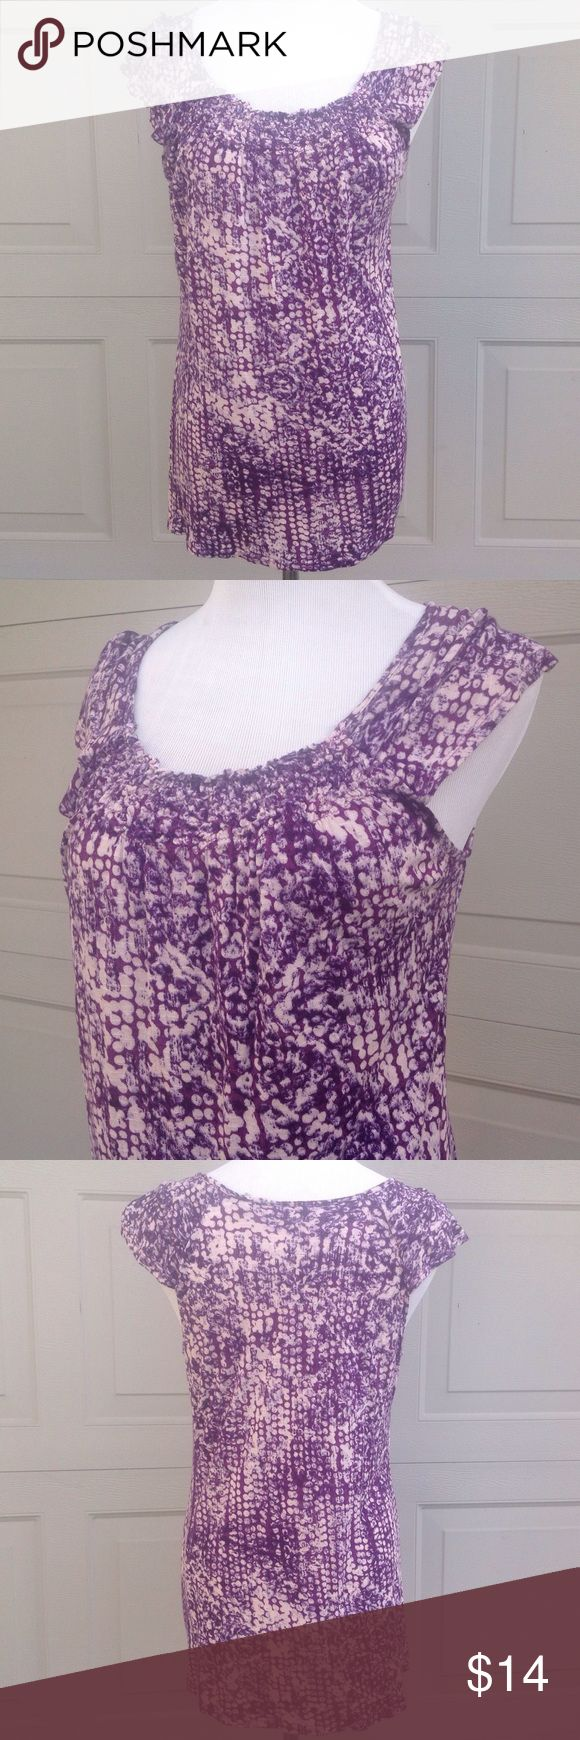 Fresh Purple and White Sleeveless Top - Small Smocked neckline, purple and white pattern, loose fitting top. 100% Rayon Fresh Tops